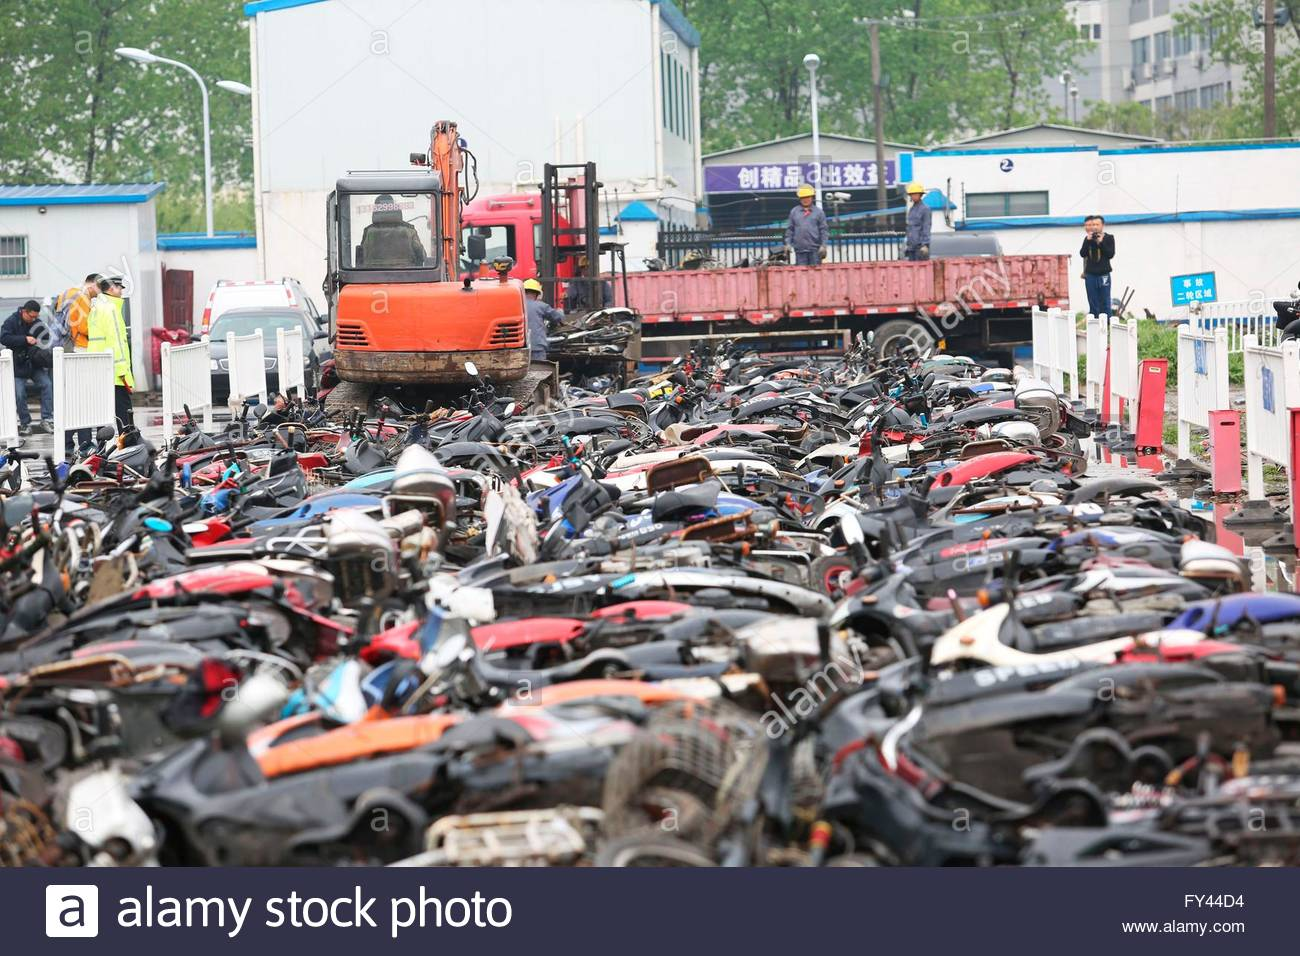 Shanghai, China. 21st April, 2016. More than 300 vehicles which conform to the scrap conditions according to relevant - Stock Image